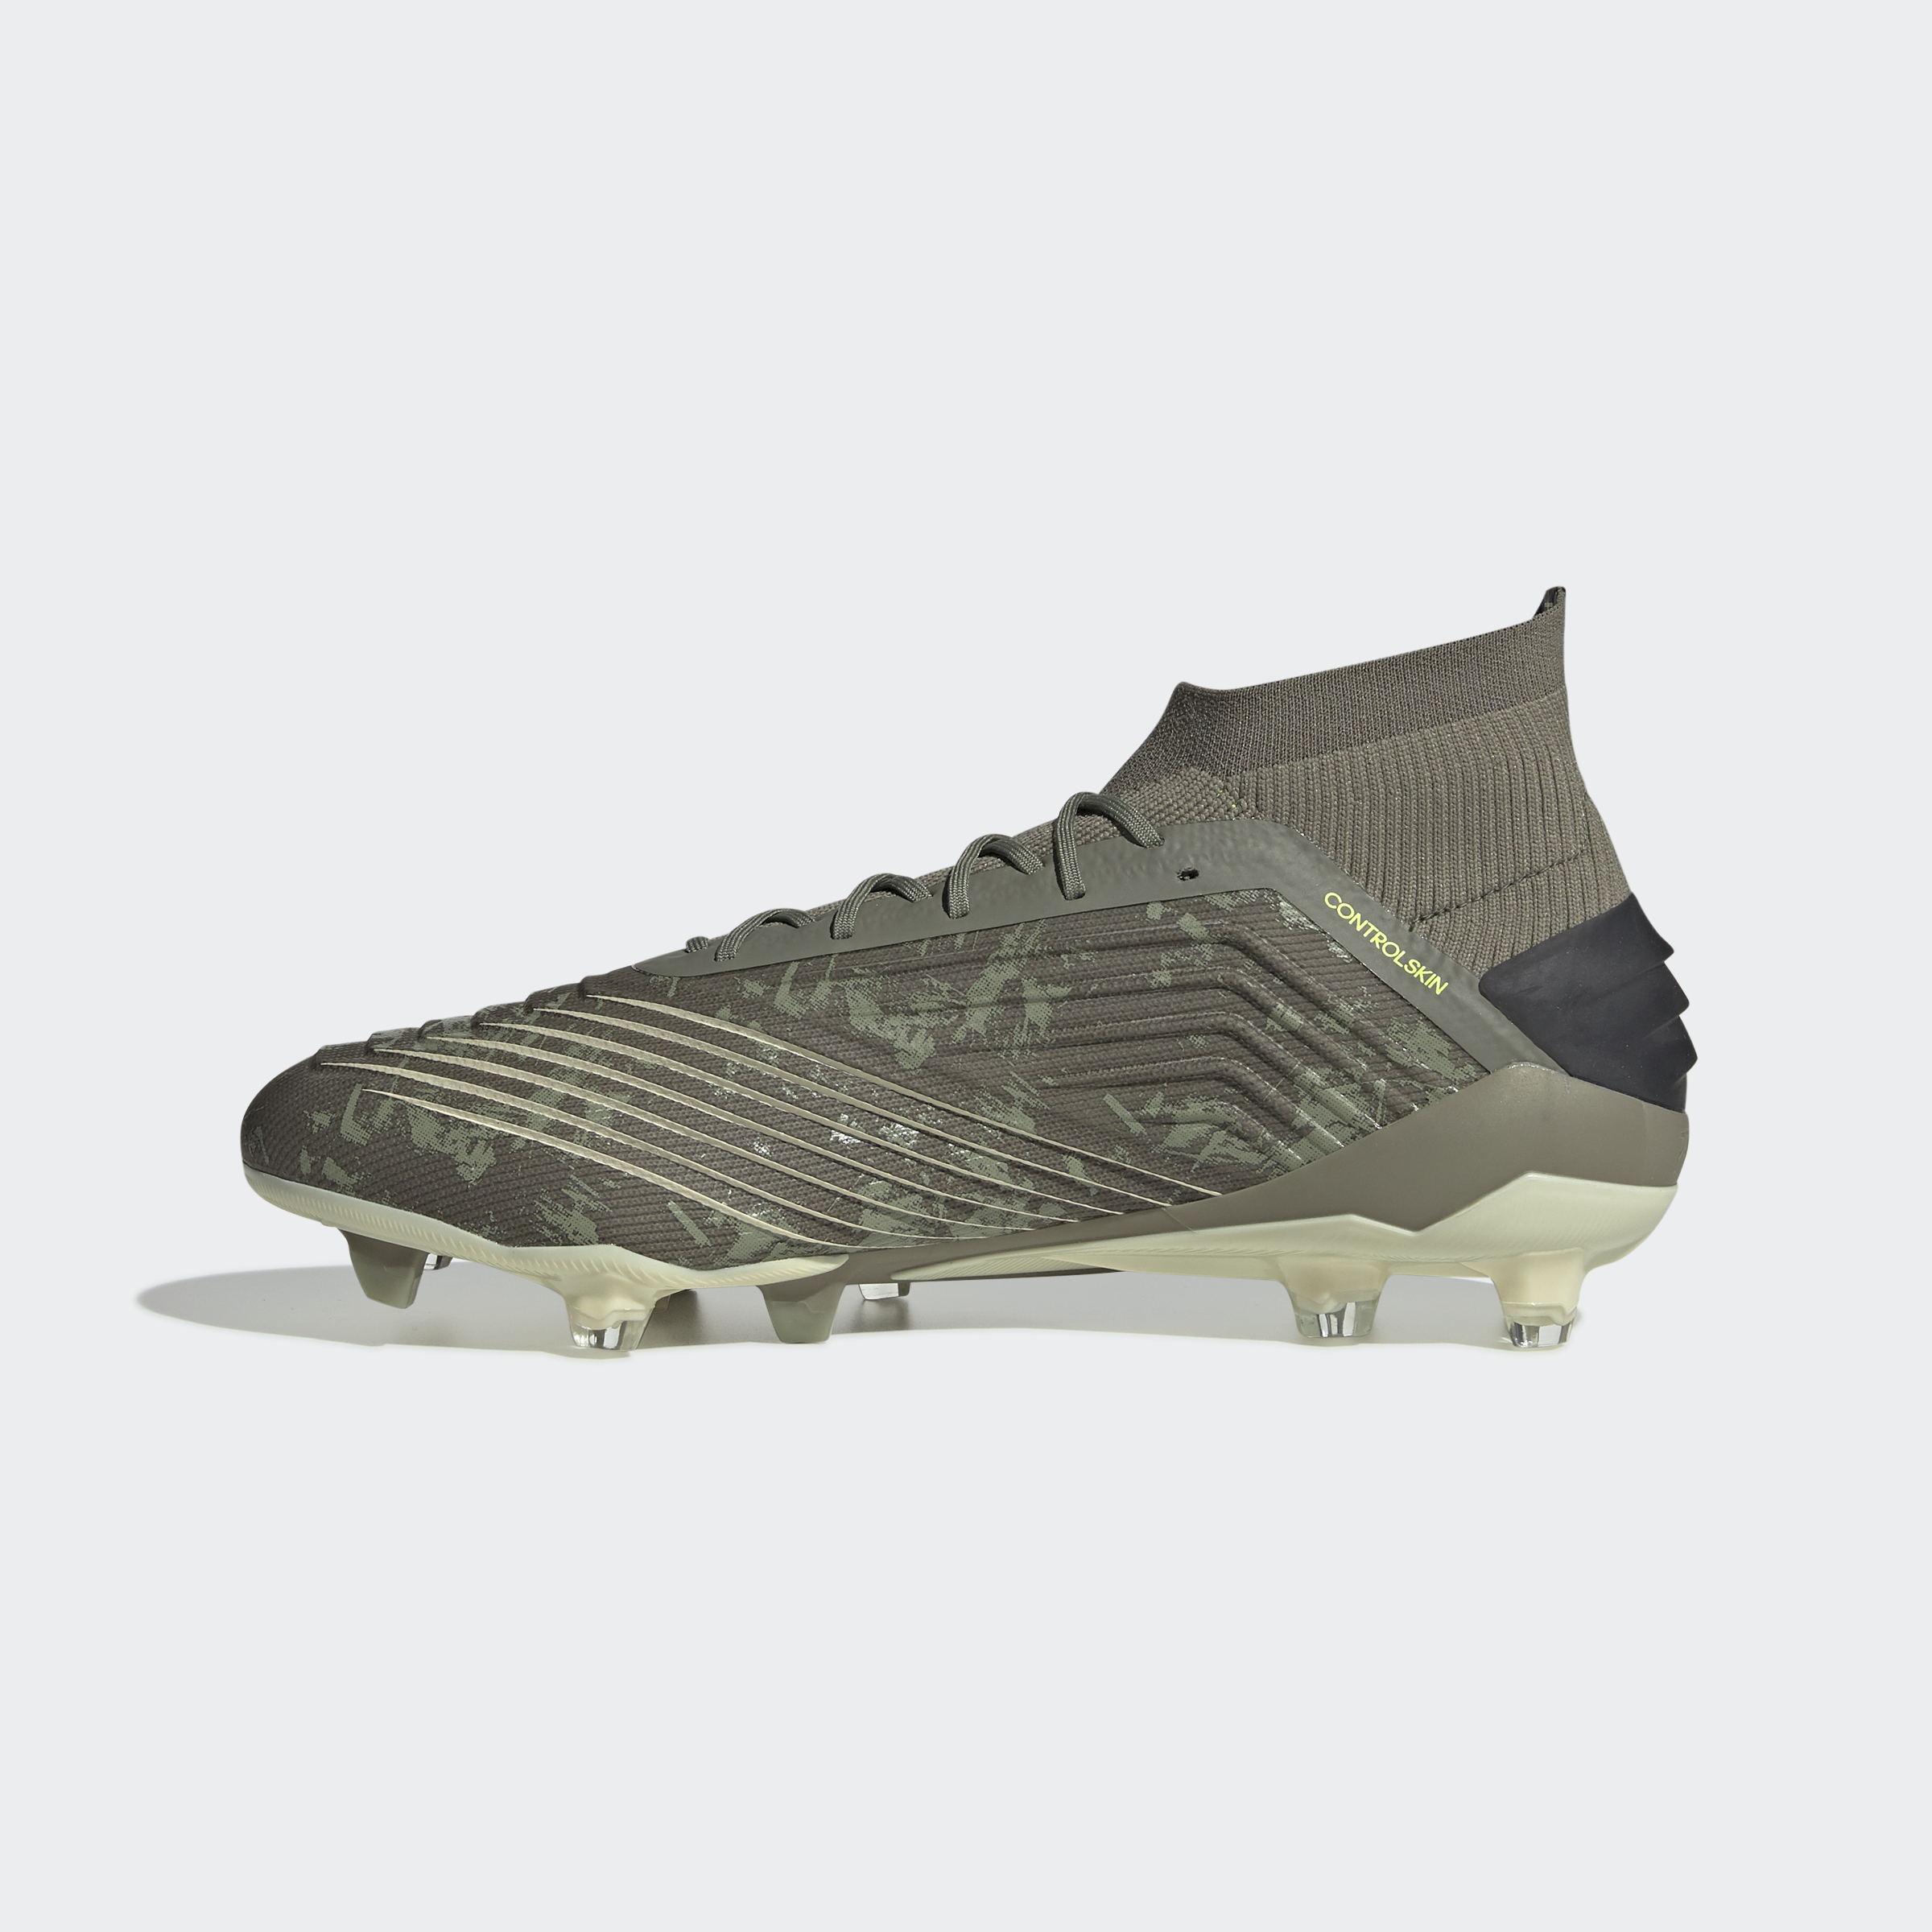 adidas-Predator-19-1-Firm-Ground-Cleats-Football-Boots thumbnail 15